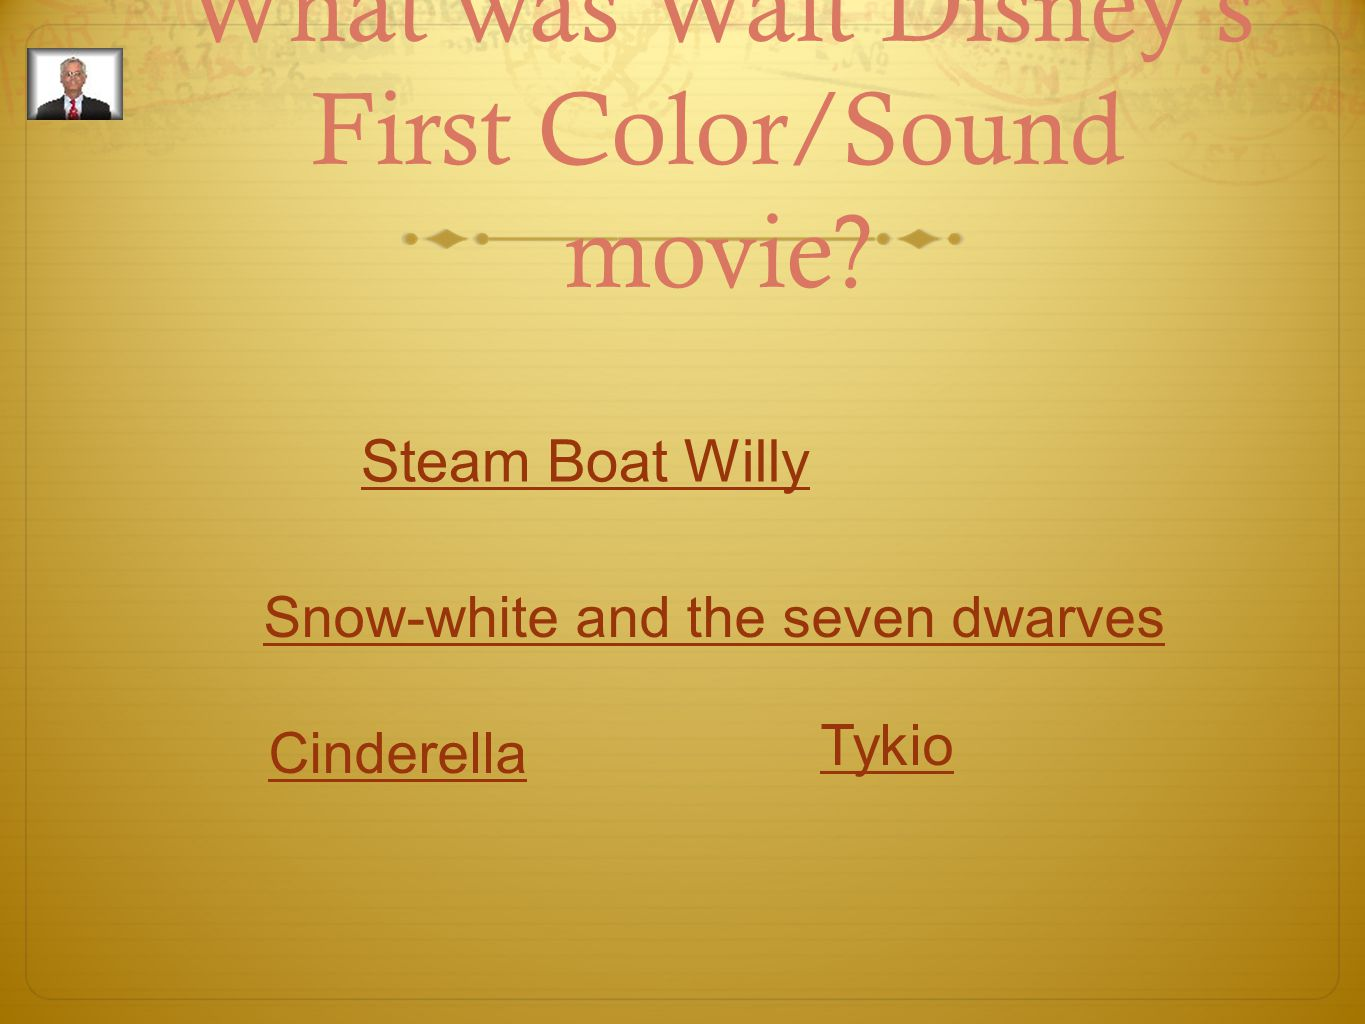 What was Walt Disney's First Color/Sound movie.